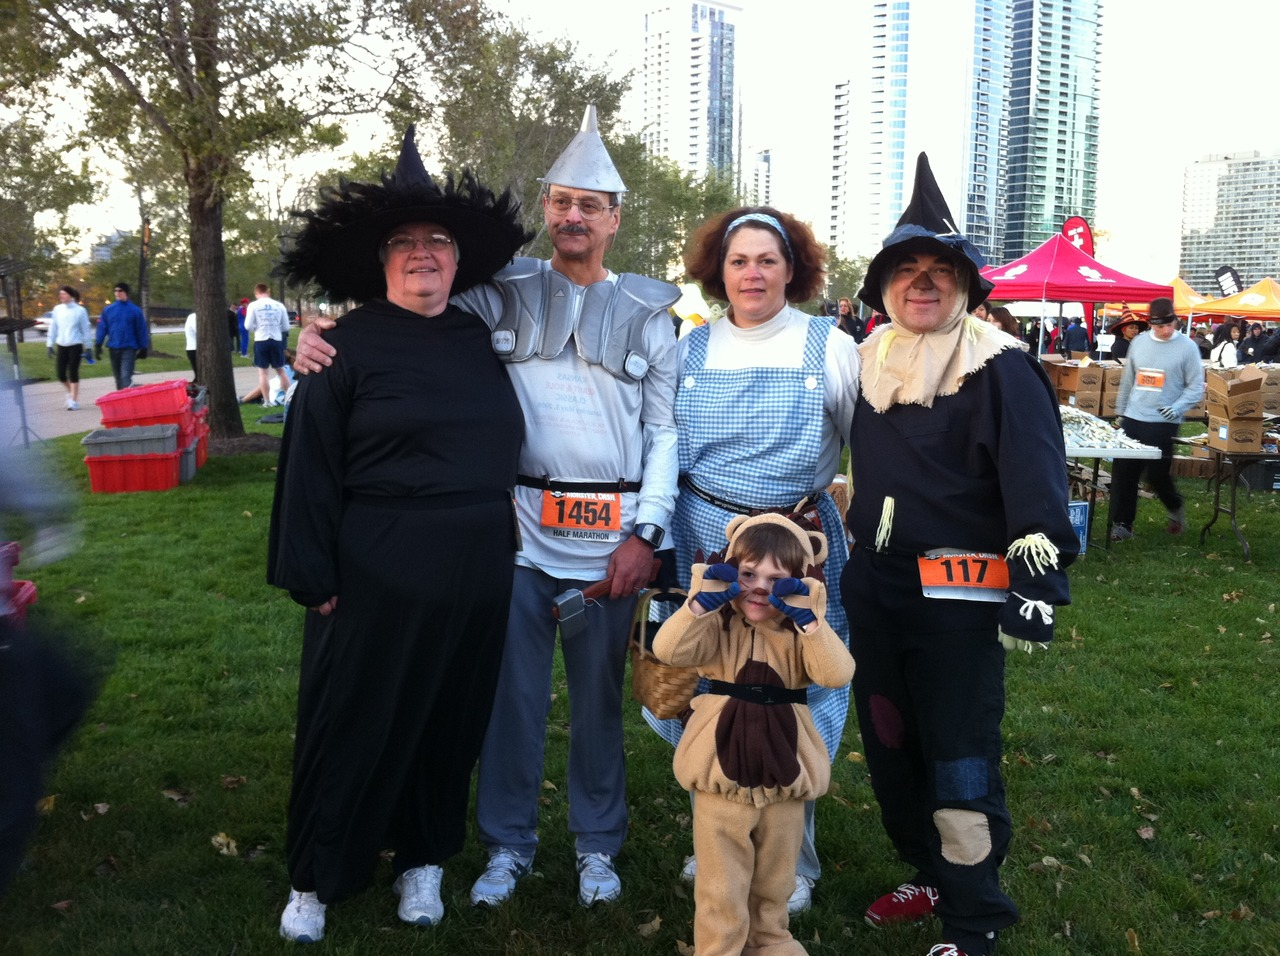 """Because we went from Kansas to Chicago for a Halloween-themed race (the Monster Dash) in 2011, we thought we'd represent the state by dressing as some familiar characters. I think our 4-year-old Lion was the most popular. We even won for best costumes!"" -- Eric R. Price"